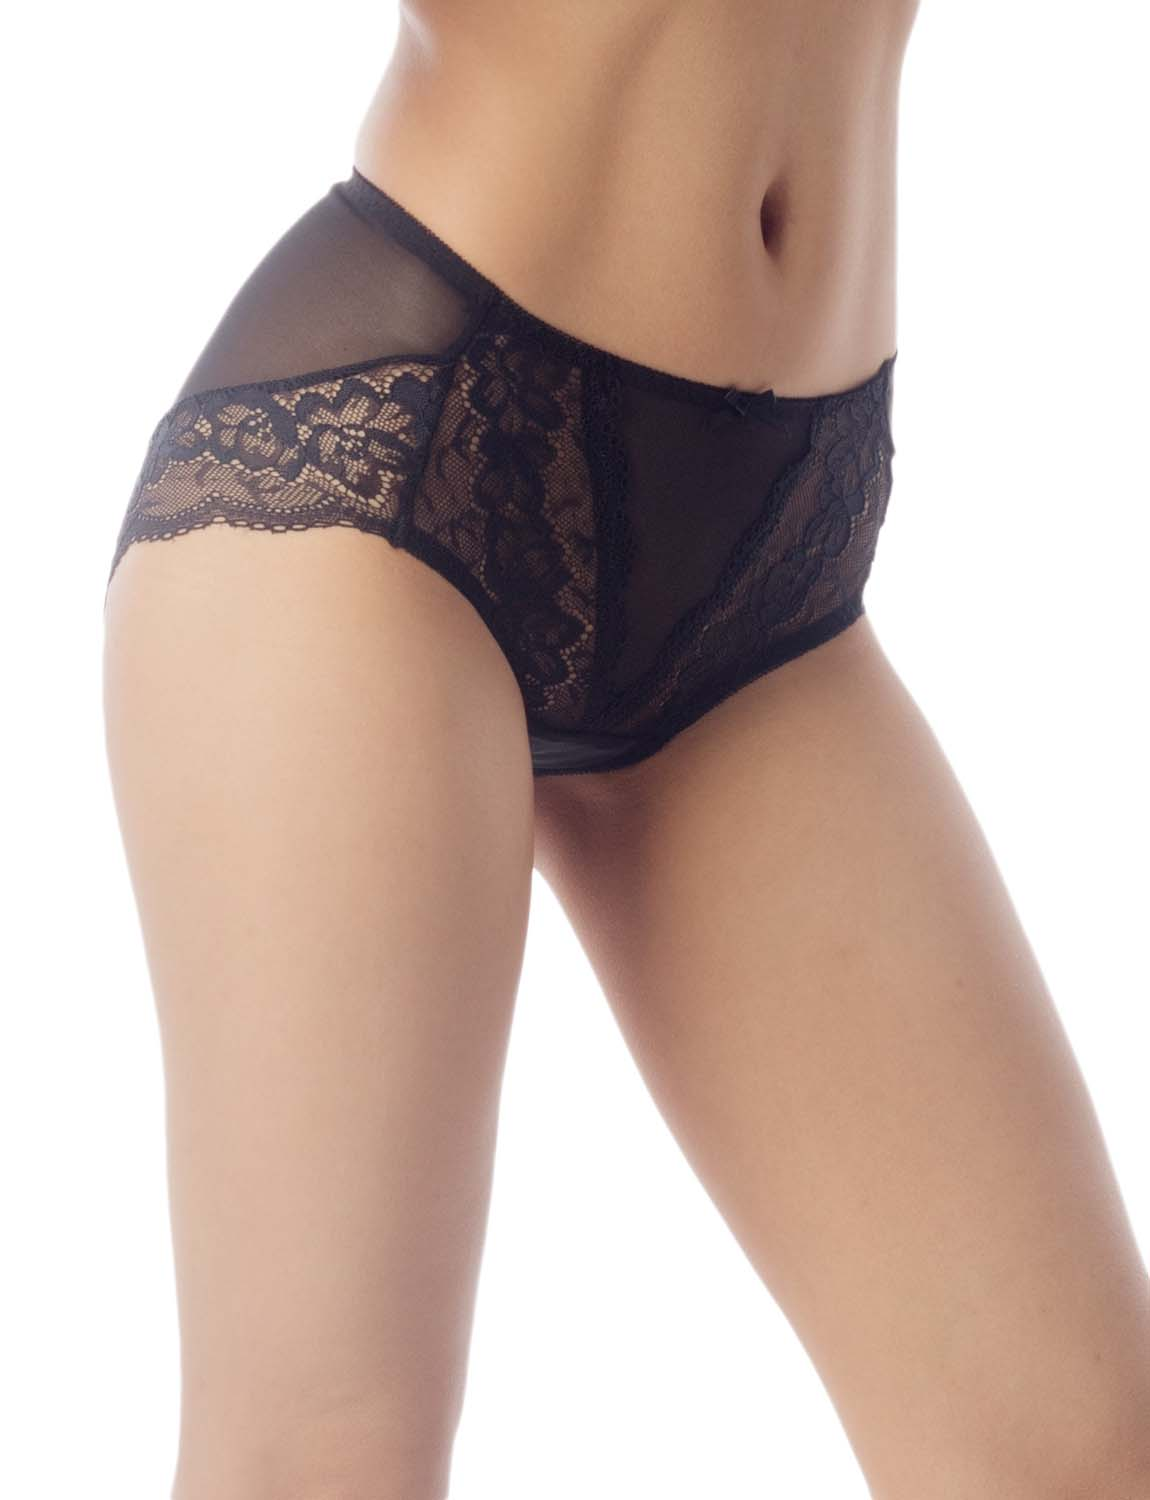 Women's Underwear Sheer Lace See-Through Bowknot Mid Waist Hipster Panty, Size: 2XL, Black